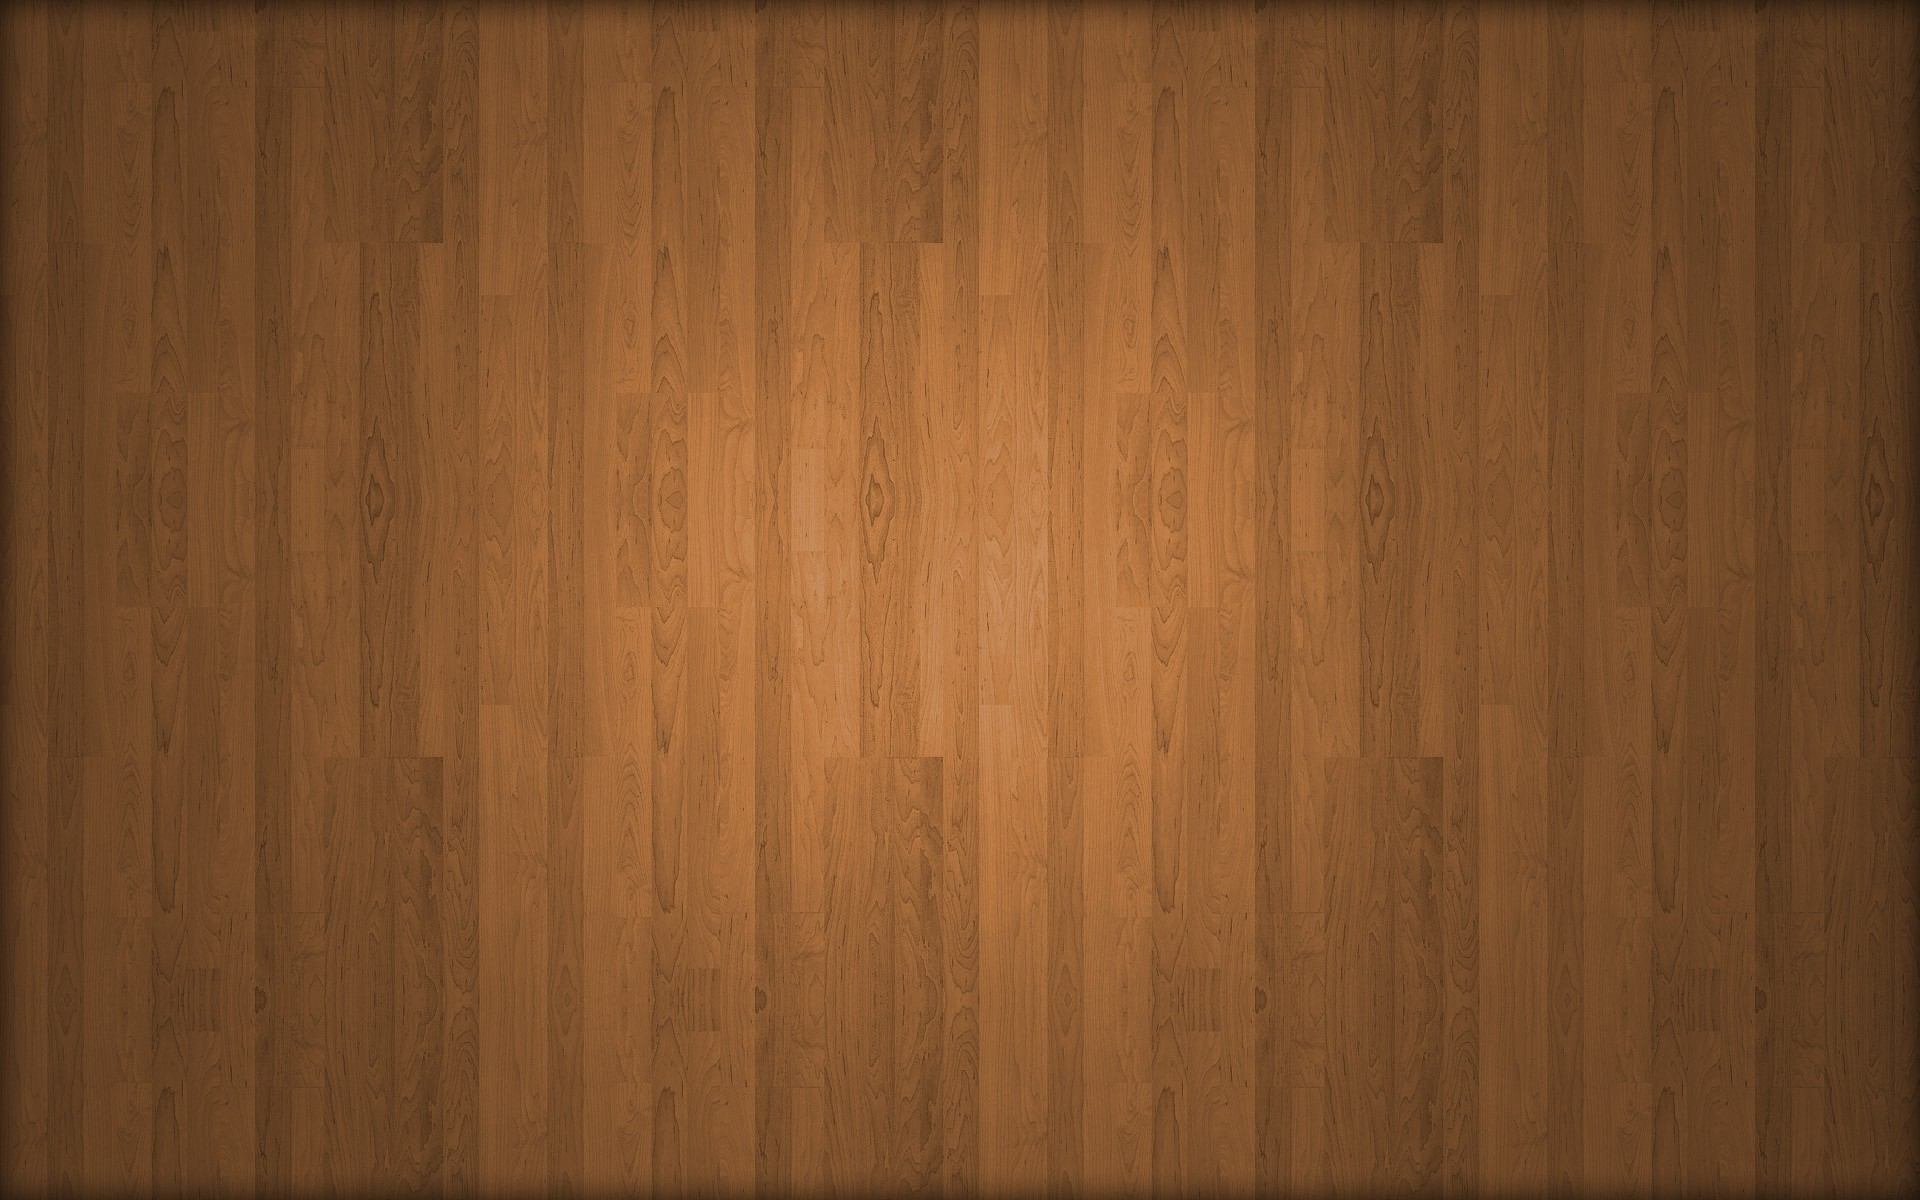 Wood Texture Simple Background Wallpapers Hd Desktop